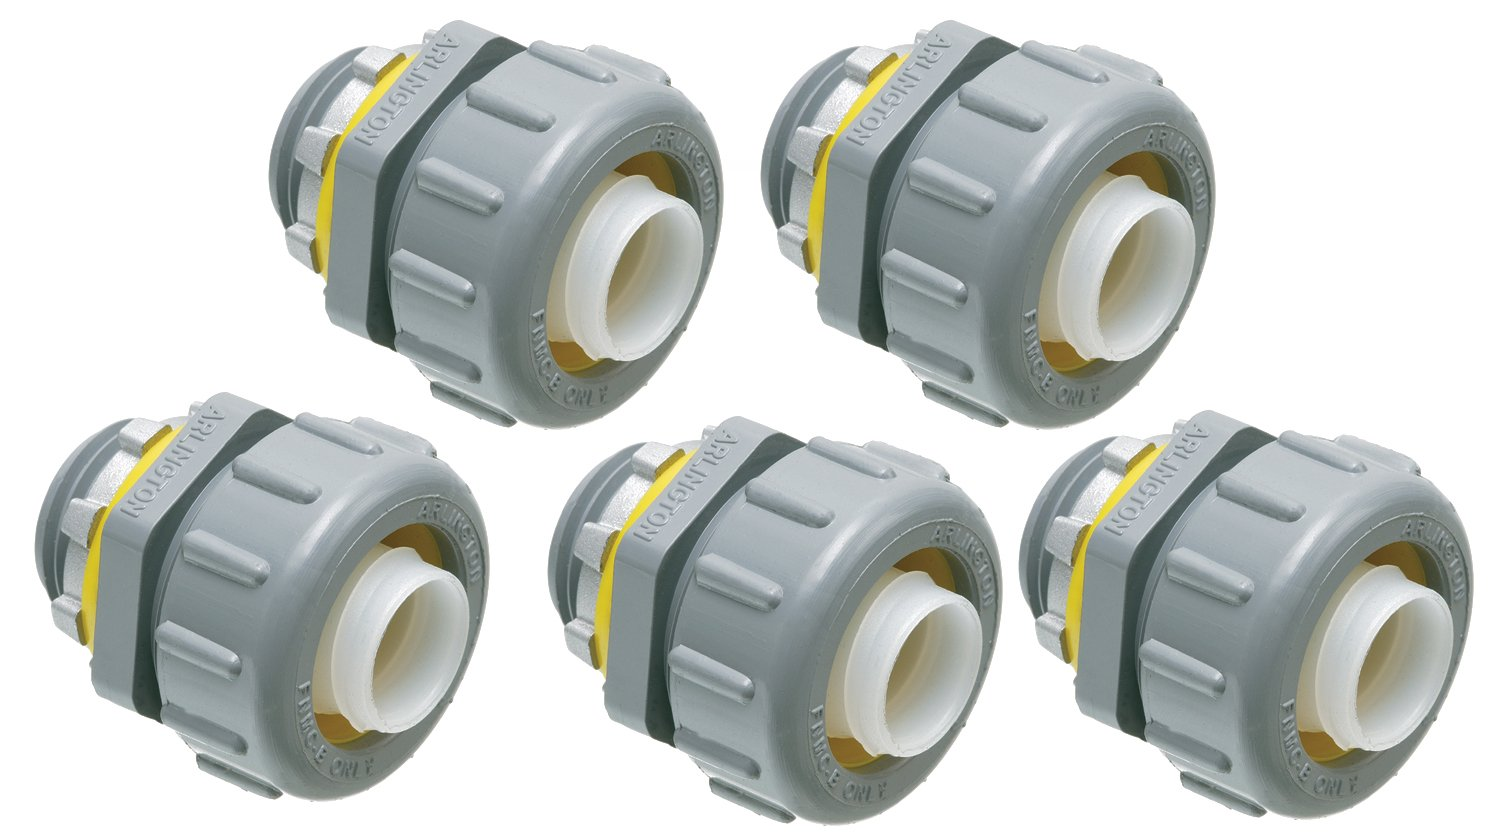 Arlington NMLT75-5 Non-Metallic 3/4-Inch Straight Liquid-Tight Connector, 5-Pack